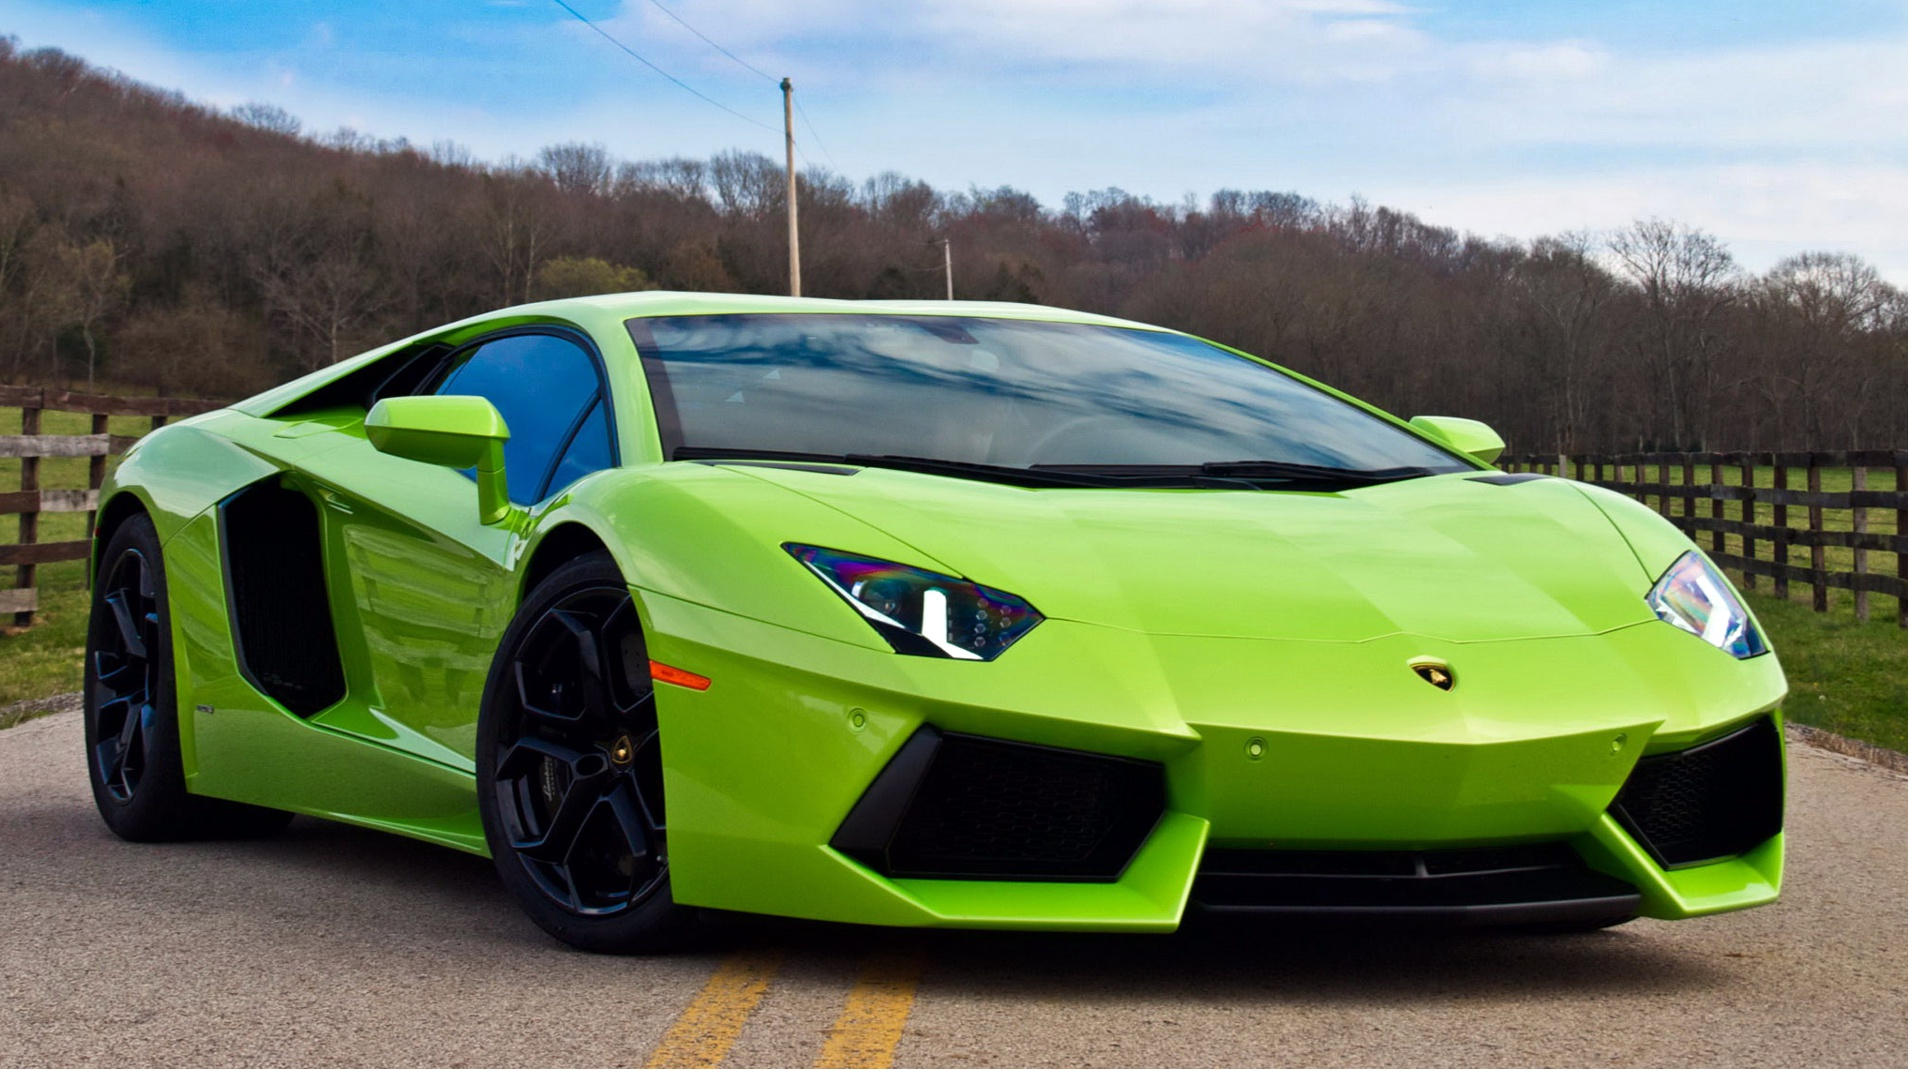 Green Lamborghini Test Drive 55.72 Kb